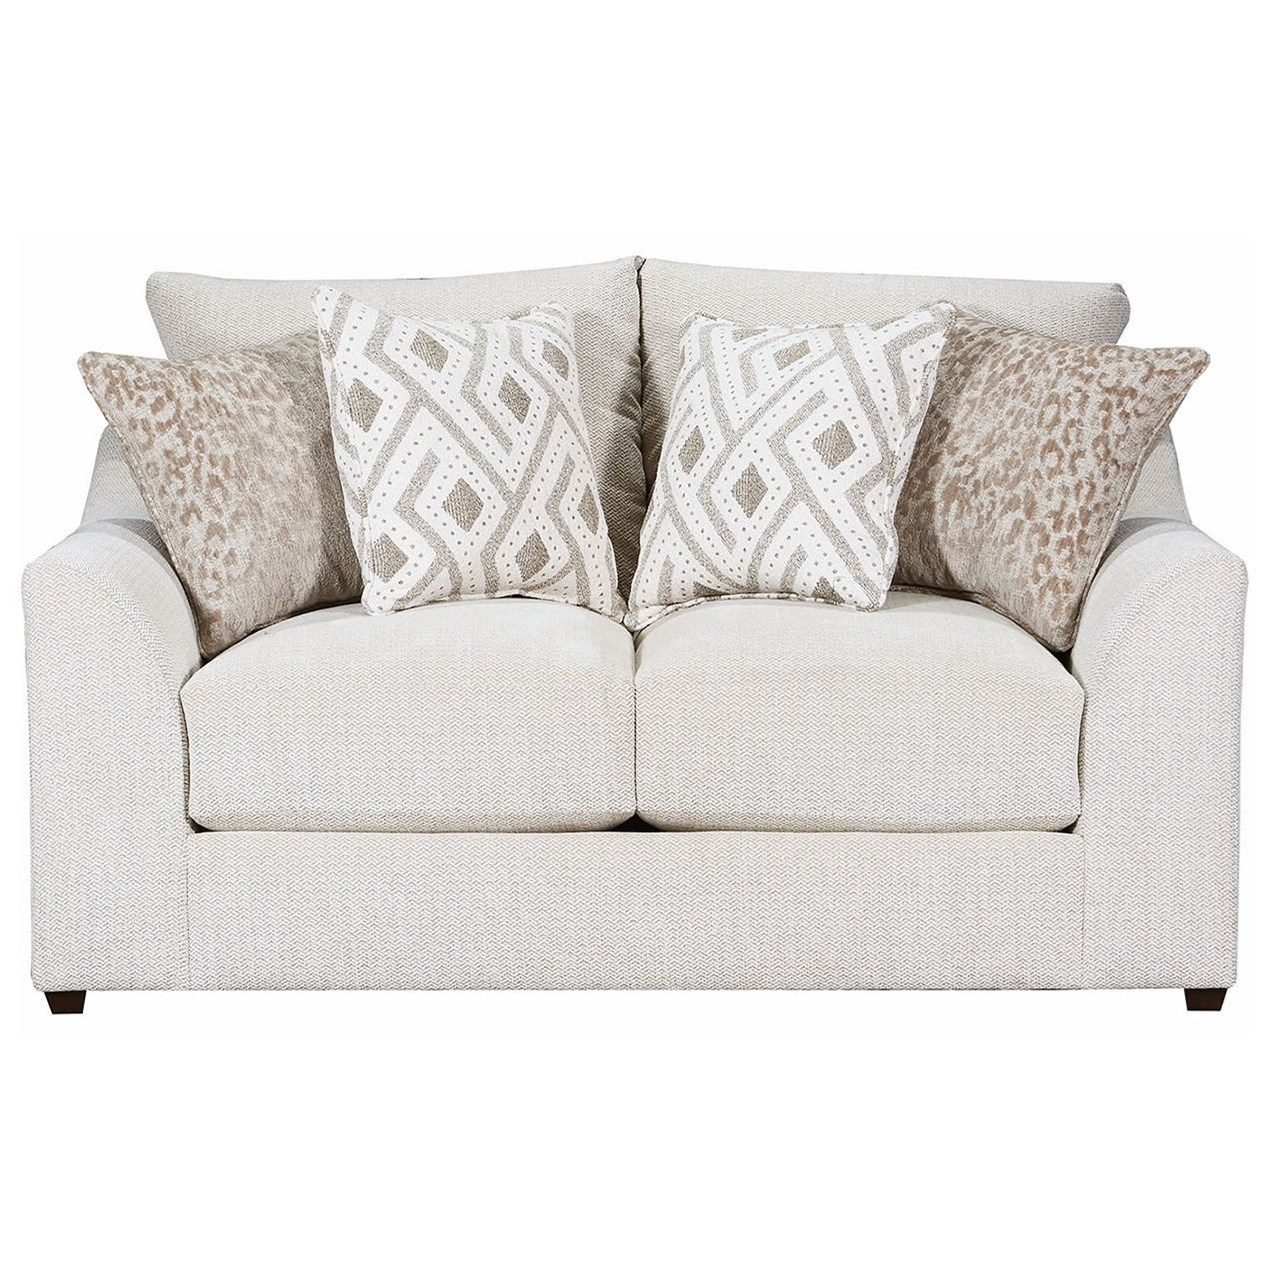 Vivian Loveseat by Lane at Powell's Furniture and Mattress